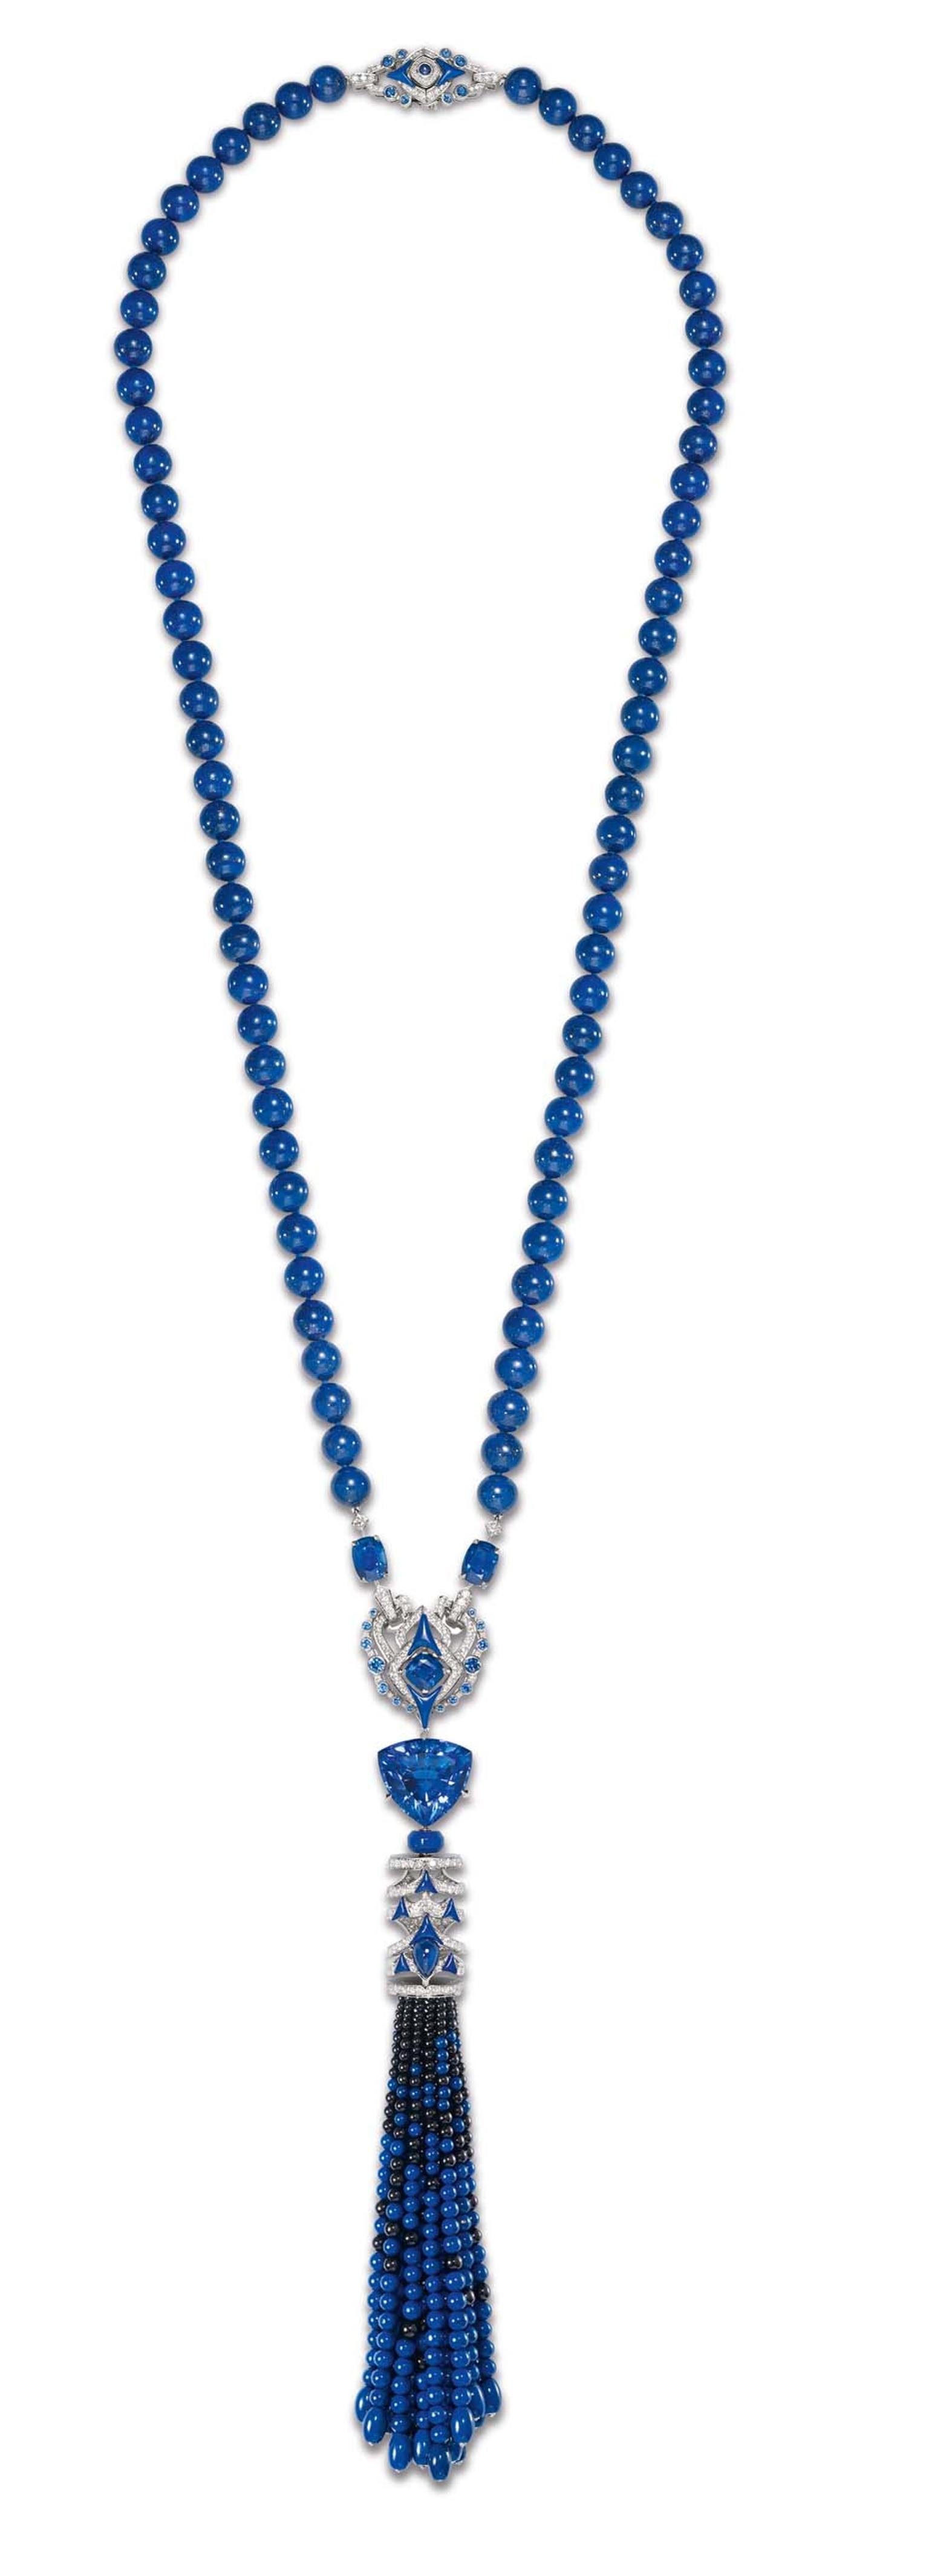 Chaumet Lumières d'Eau collection diamond necklace embellished with a pompom of graded lapis lazuli and black spinels.